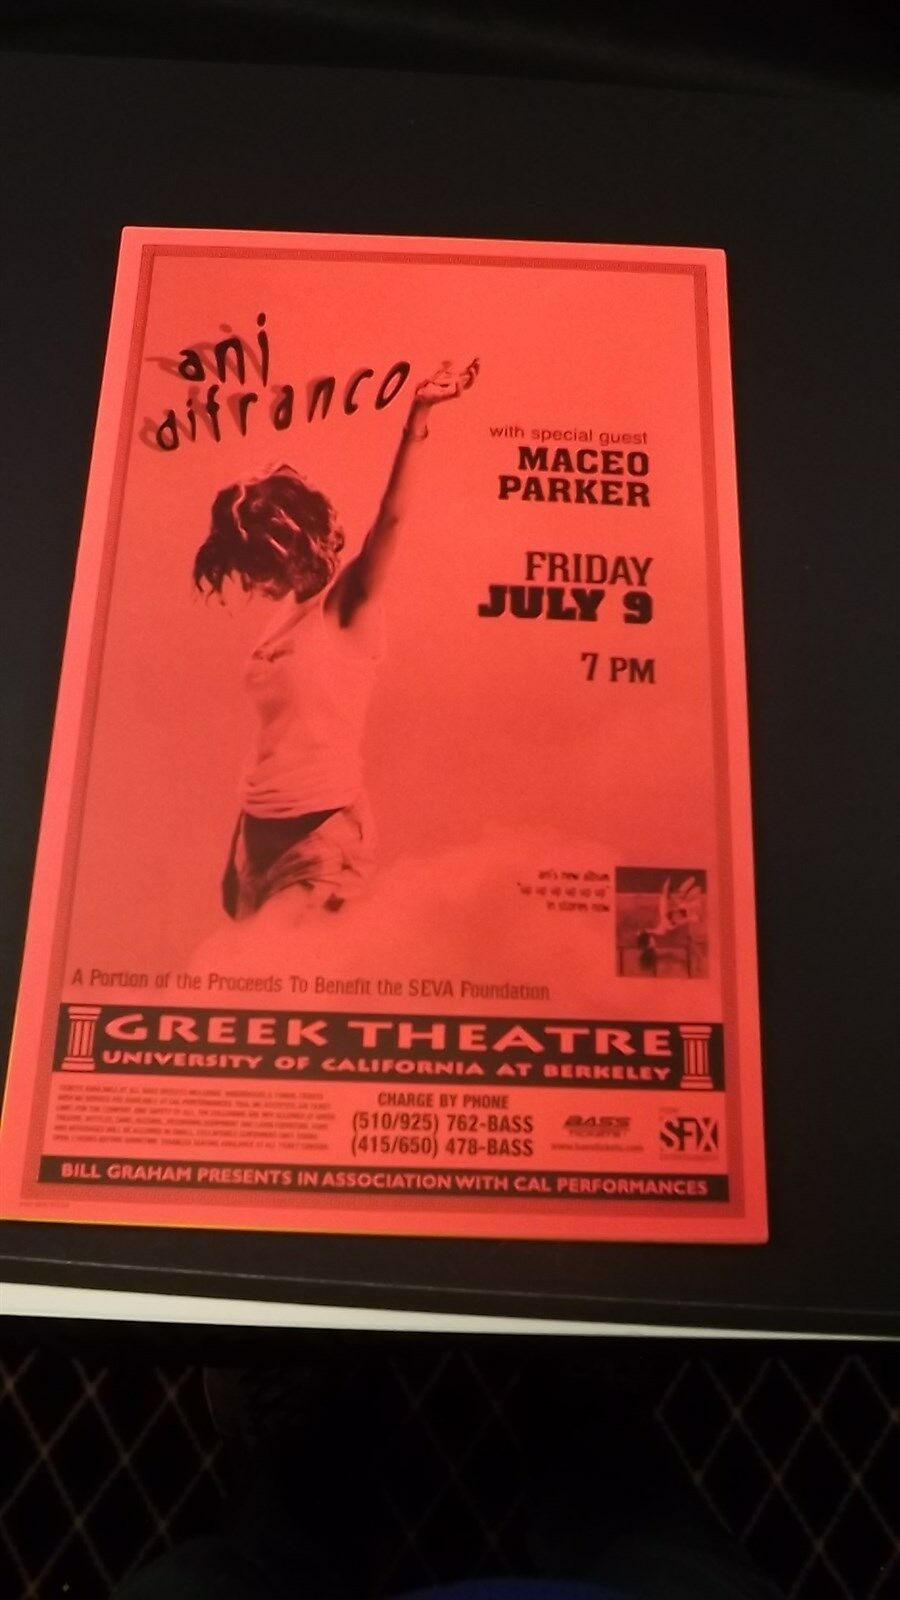 Genuine 1999 ANI DIFRANCO W/ MACEO PARKER Greek Theatre Concert Poster Flyer Ad 1